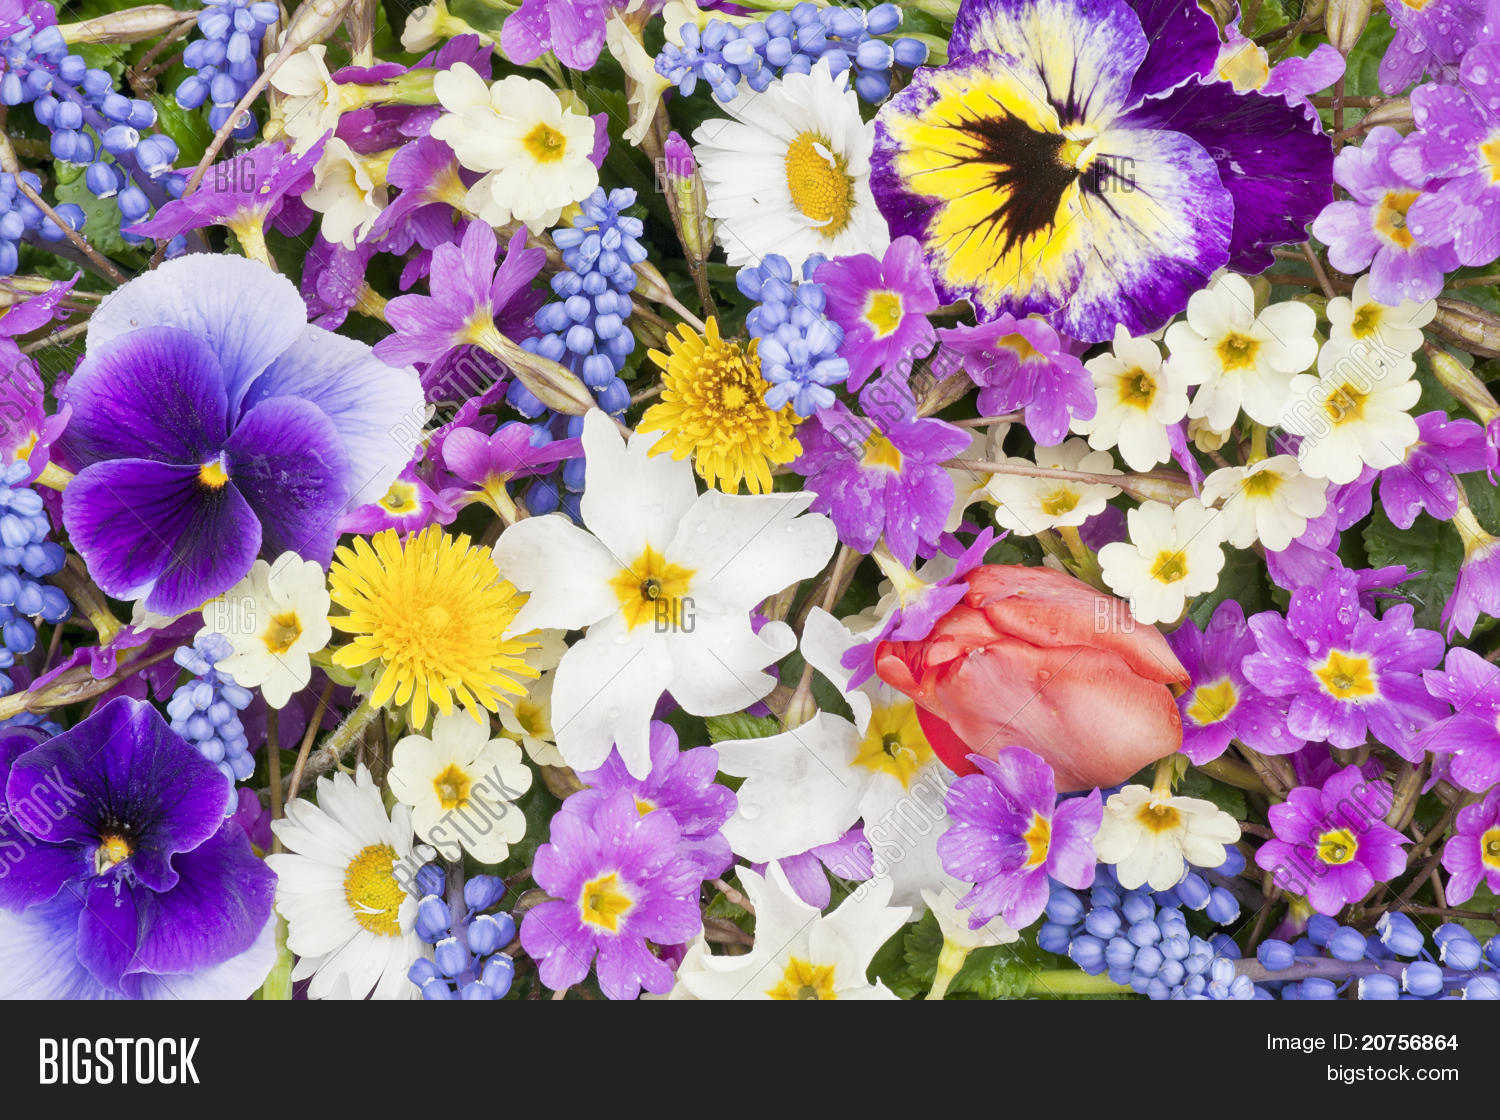 Springs Flowers After Image Photo Free Trial Bigstock